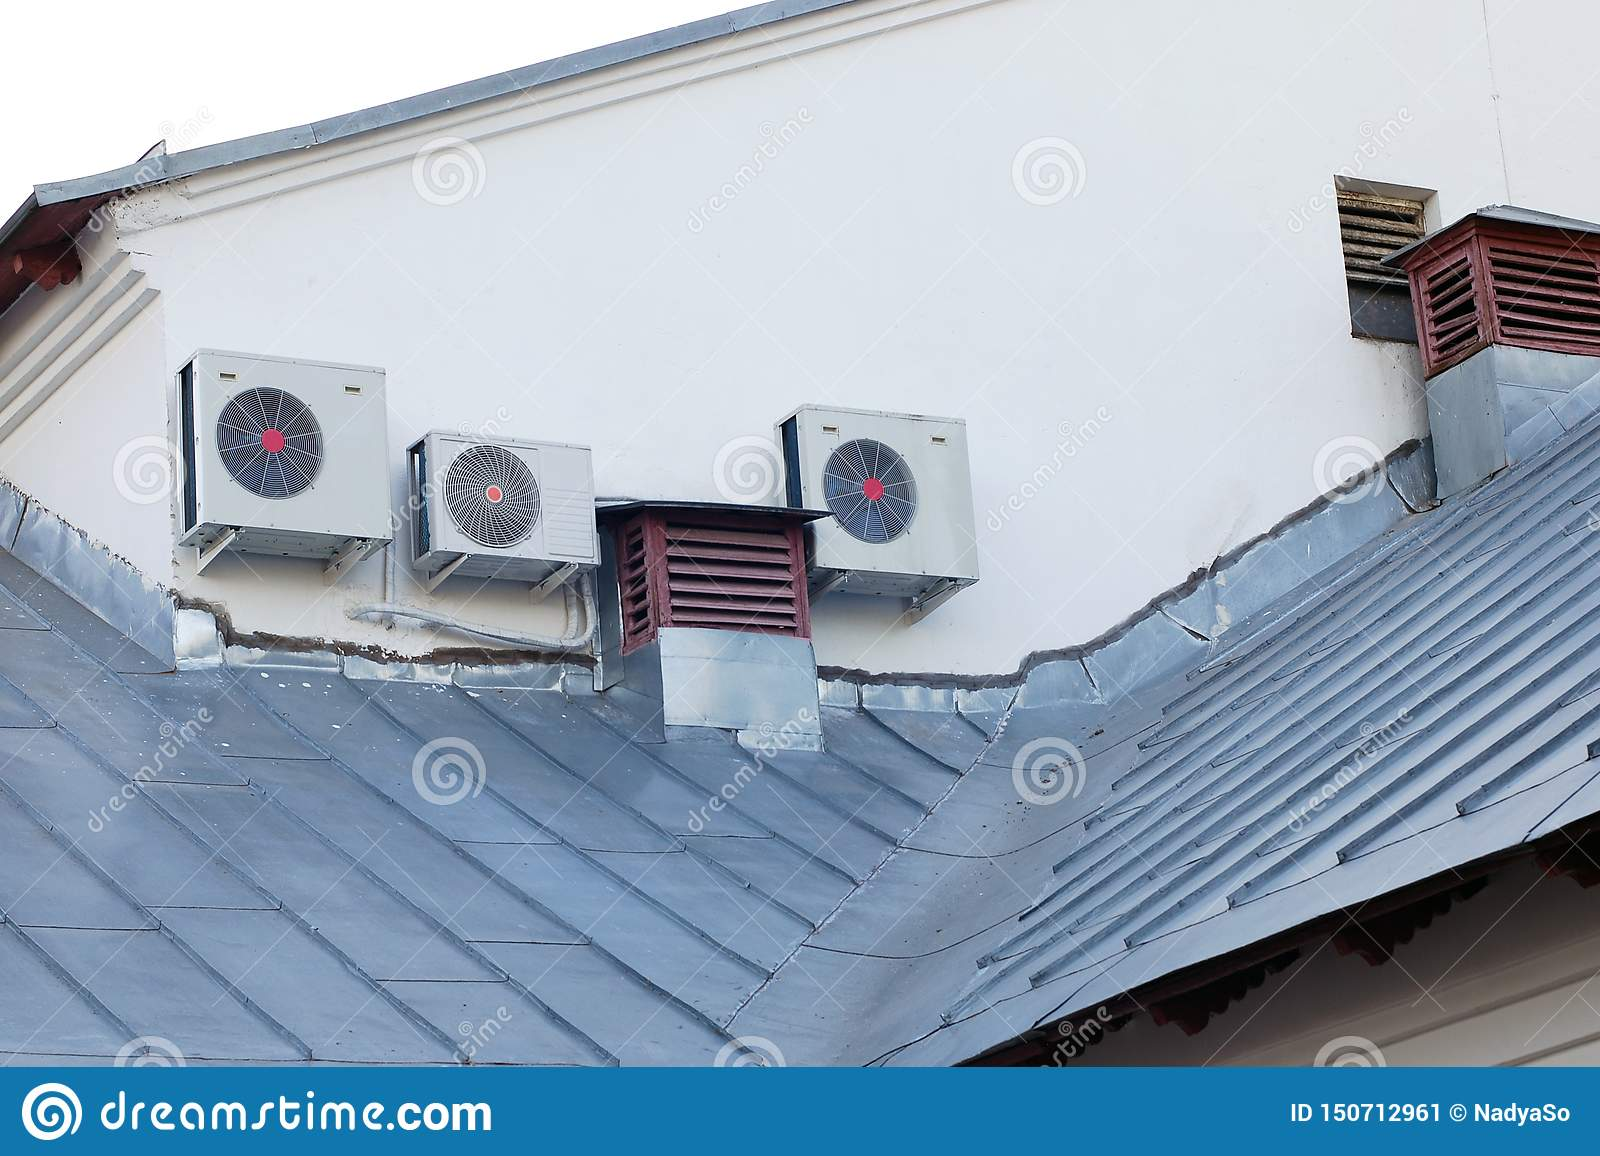 Air conditioning system and old ventilation pipes on house roof